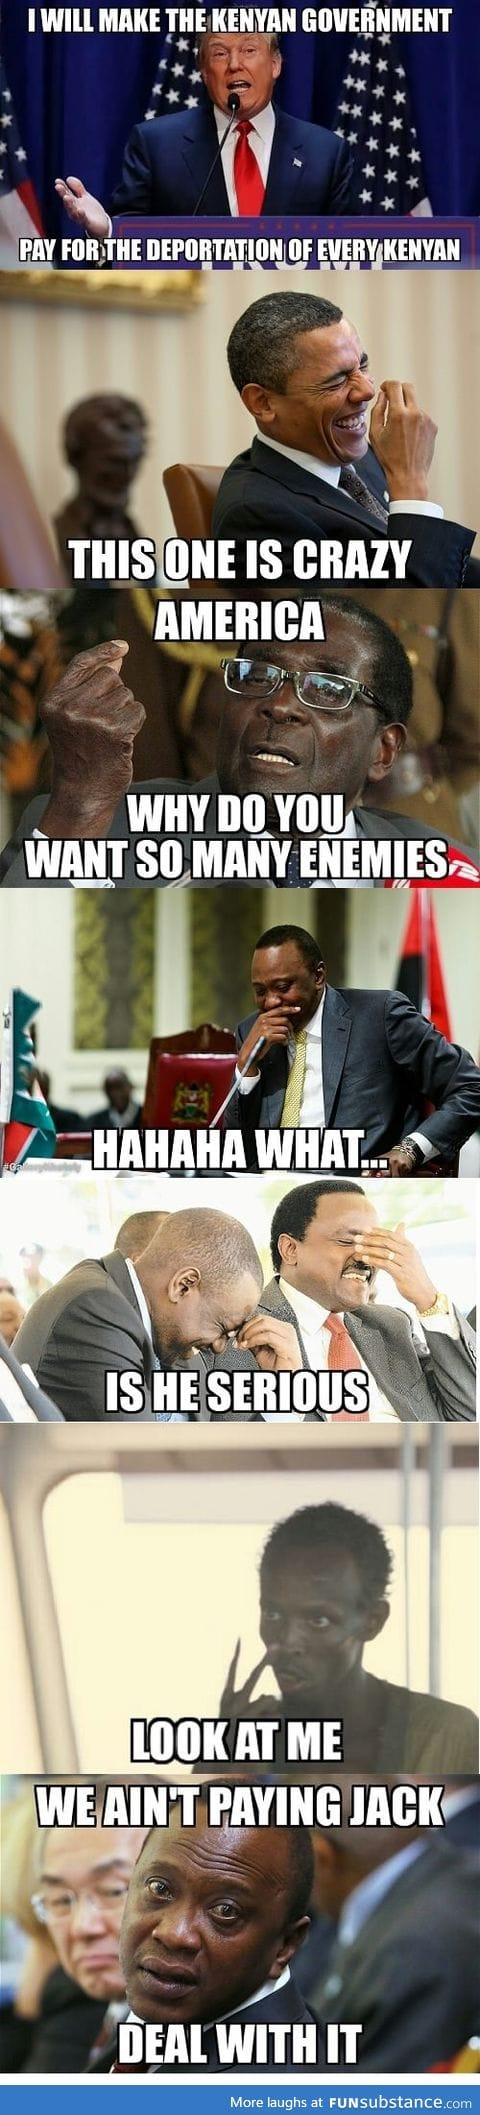 This man clearly does not know African Governments